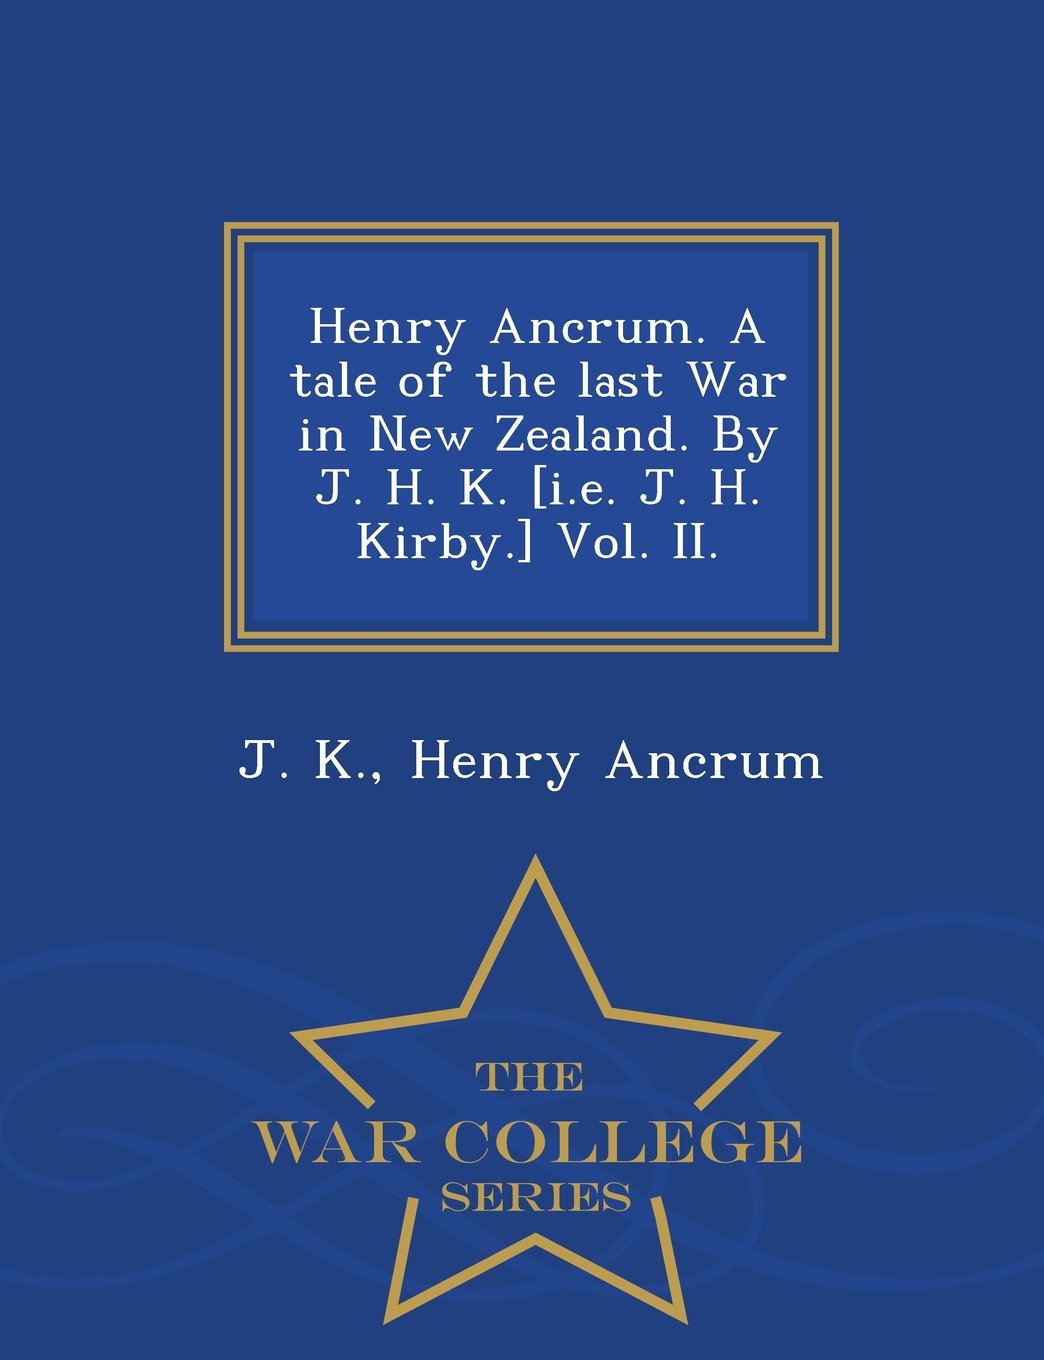 Download Henry Ancrum. A tale of the last War in New Zealand. By J. H. K. [i.e. J. H. Kirby.] Vol. II. - War College Series pdf